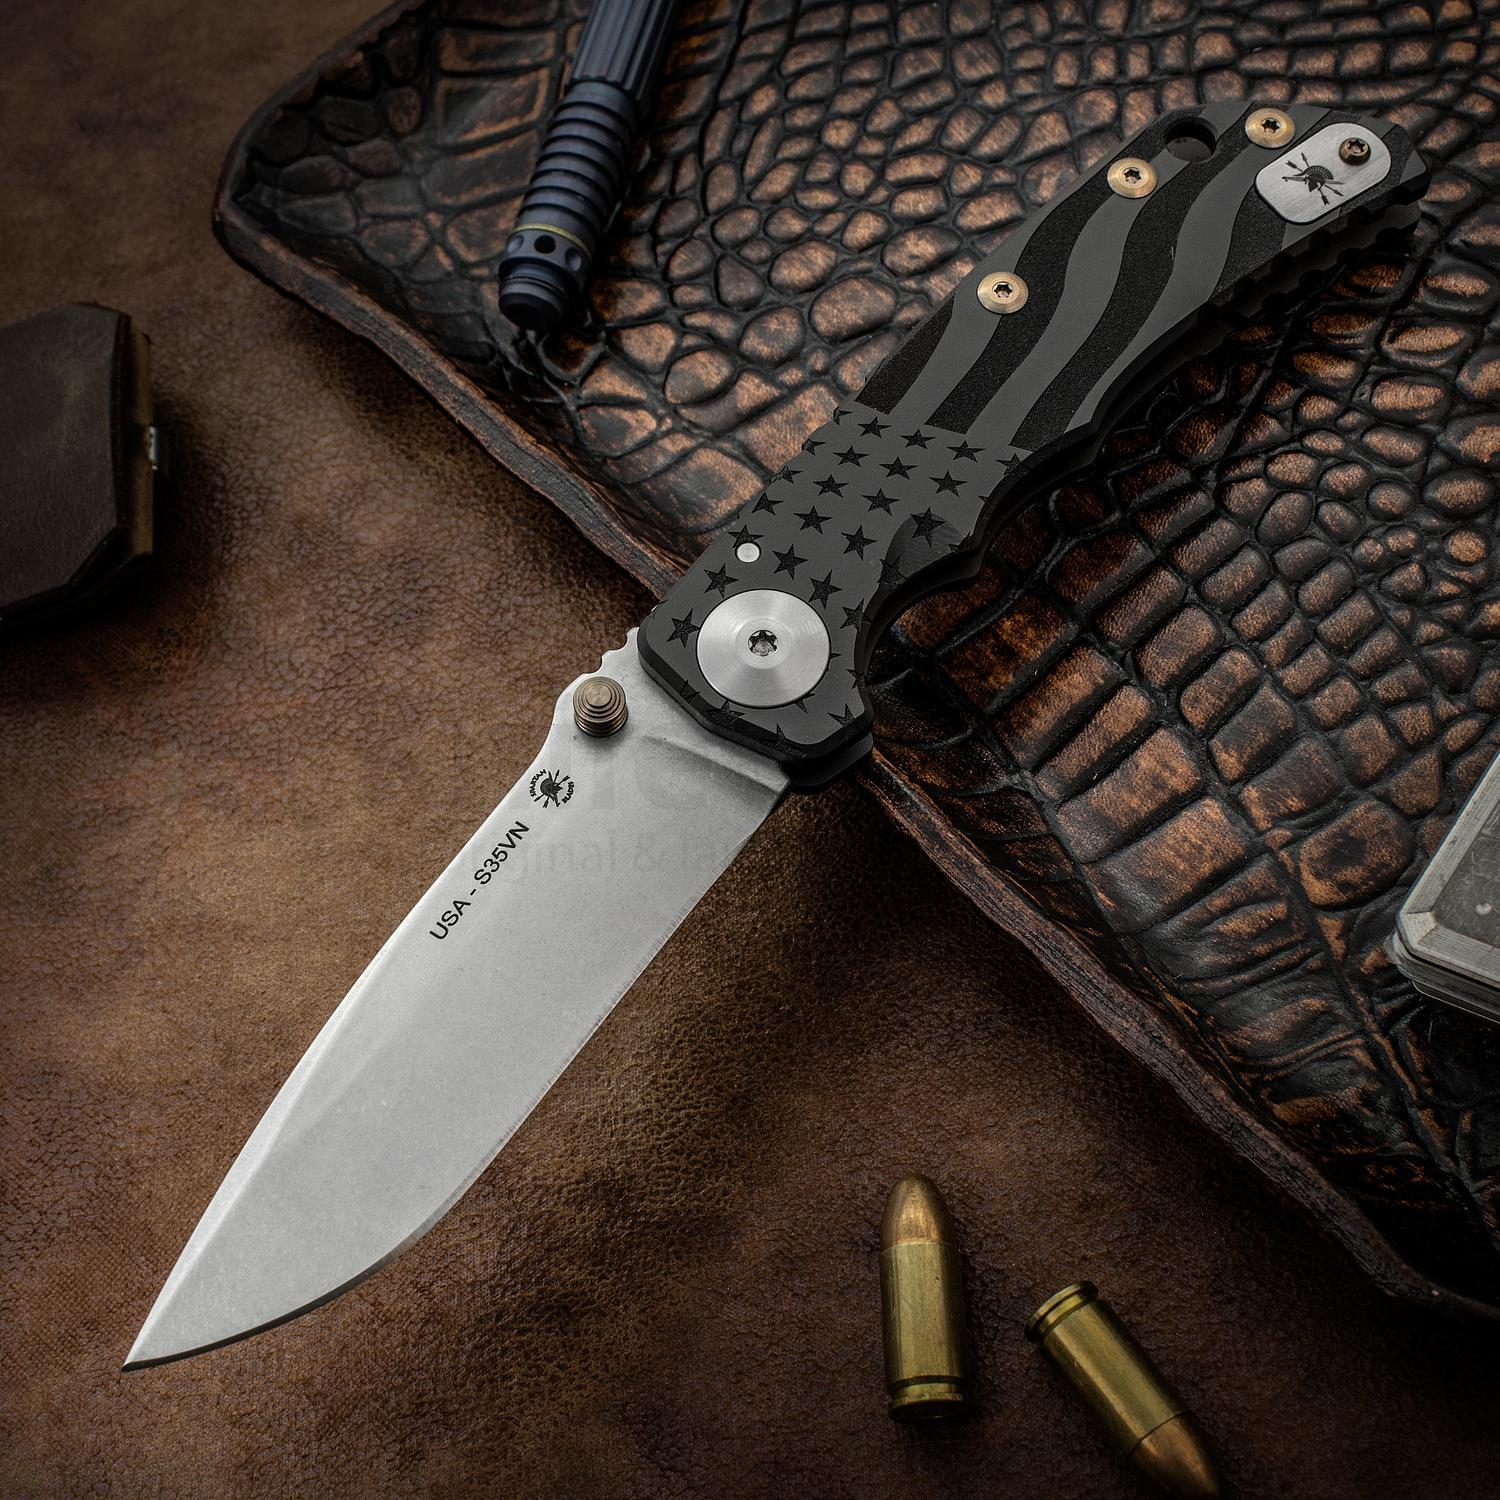 Нож складной Spartan Harsey Folder, Stonewashed Crucible CPM® S35VN™ Blade, Black PVD-Coating Titanium Handles with USA Flag Engraved, Bronze Anodized Hardware 10.0 см. нож складной exskelibur i titanium cpm s35vn steel